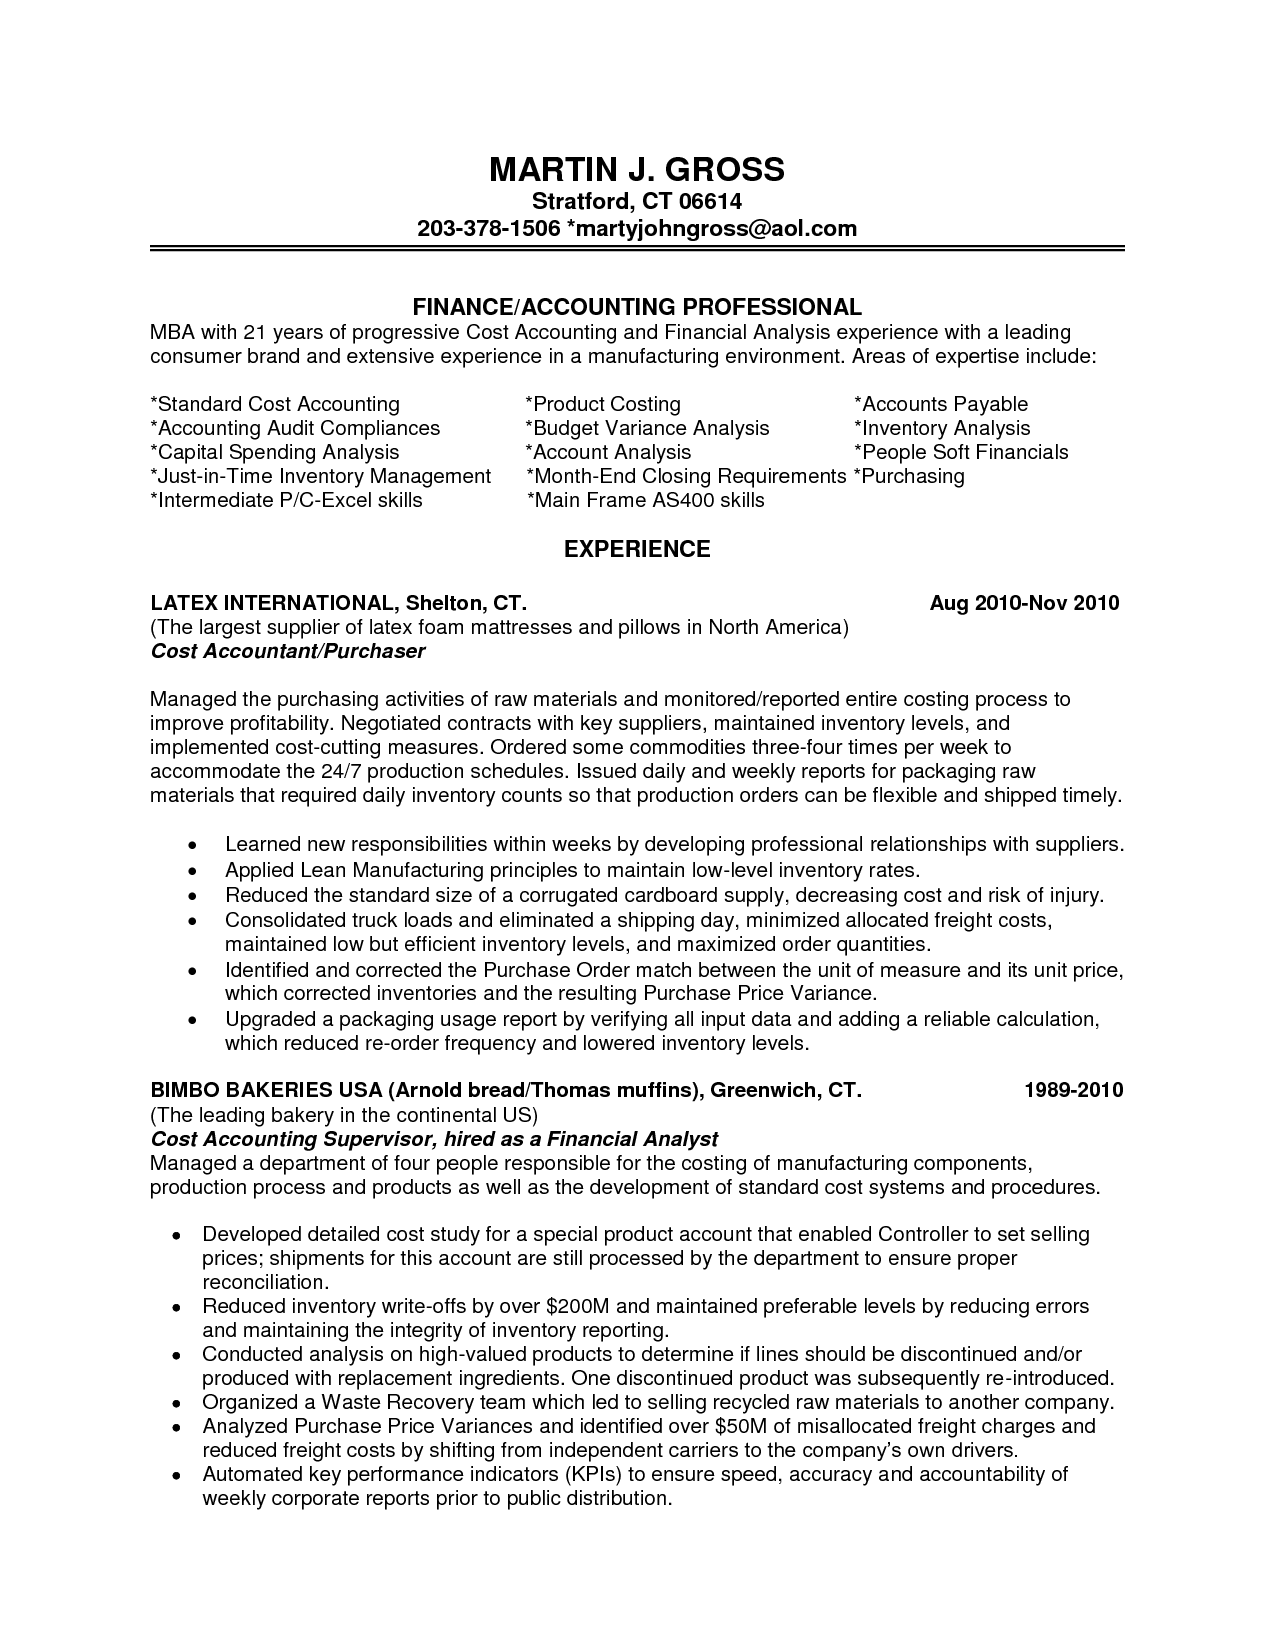 Financial Analyst Resume Examples Entry Level Job Resume Samples Resume Skills Professional Resume Examples